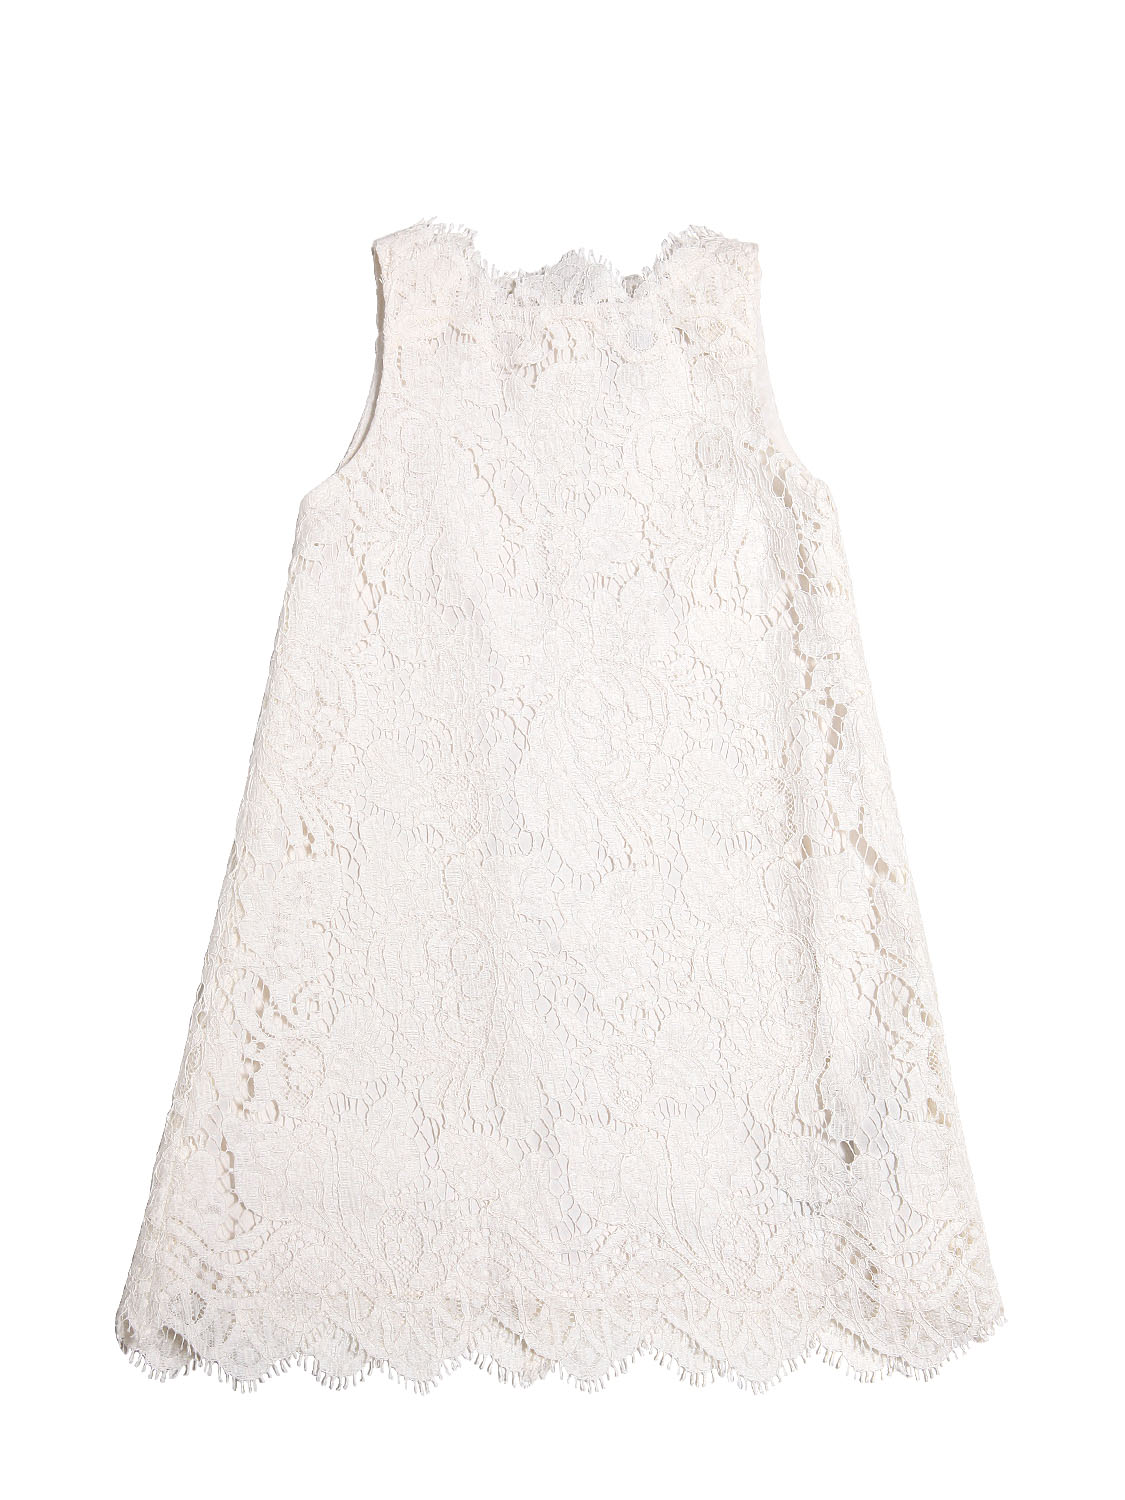 Dolce and Gabbana Spring Summer 2014 white dress with guipure lace